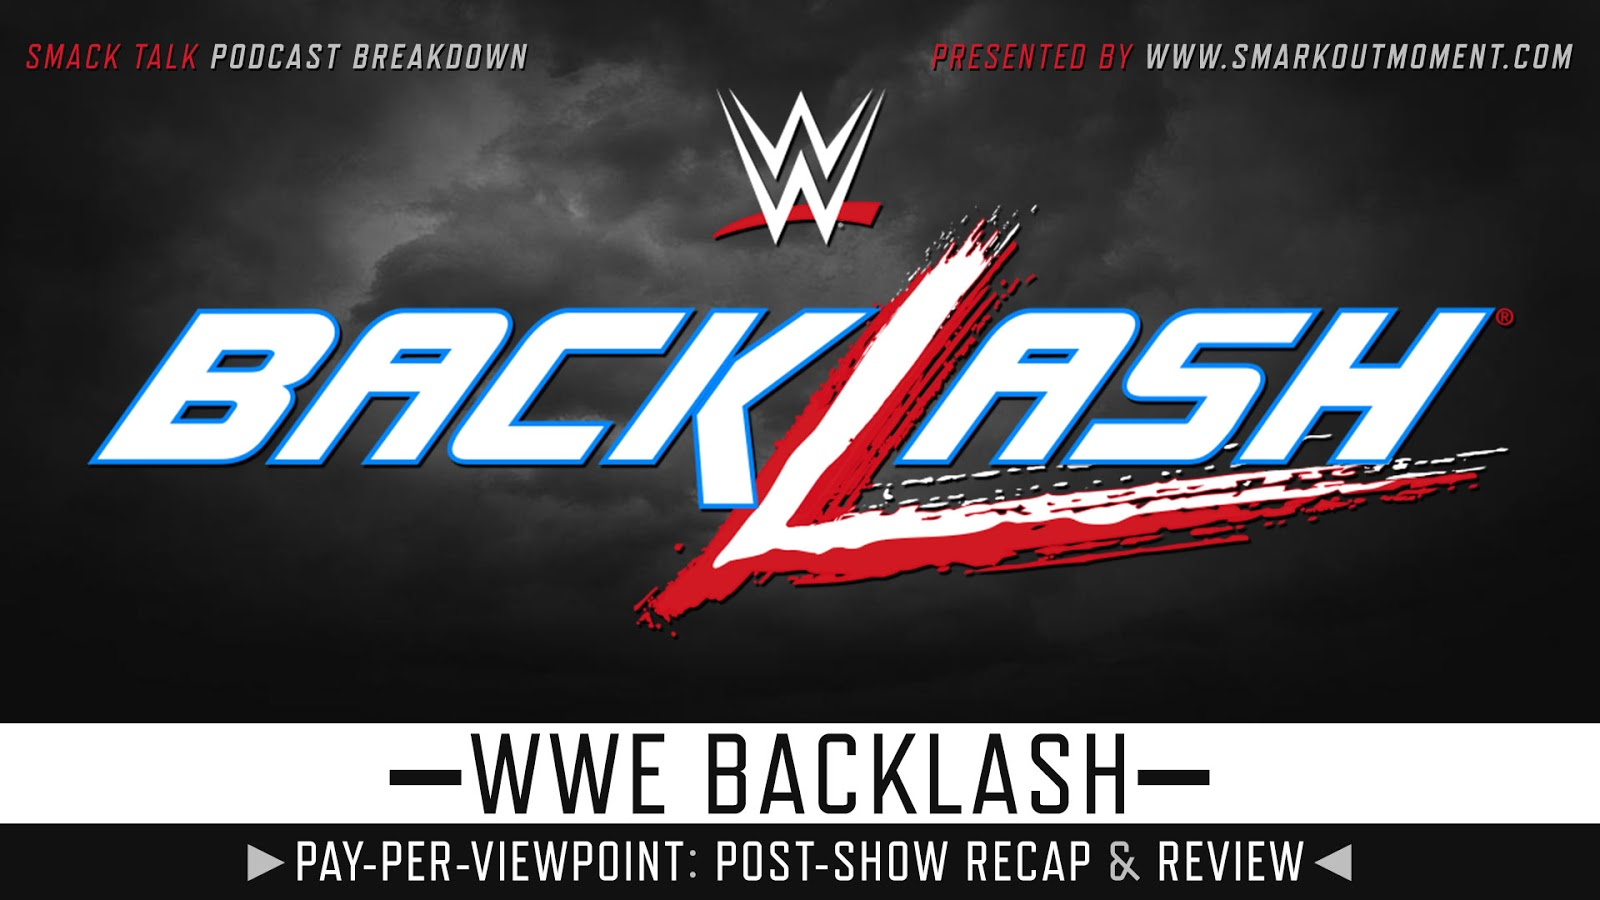 WWE WrestleMania Backlash 2021 Recap and Review Podcast